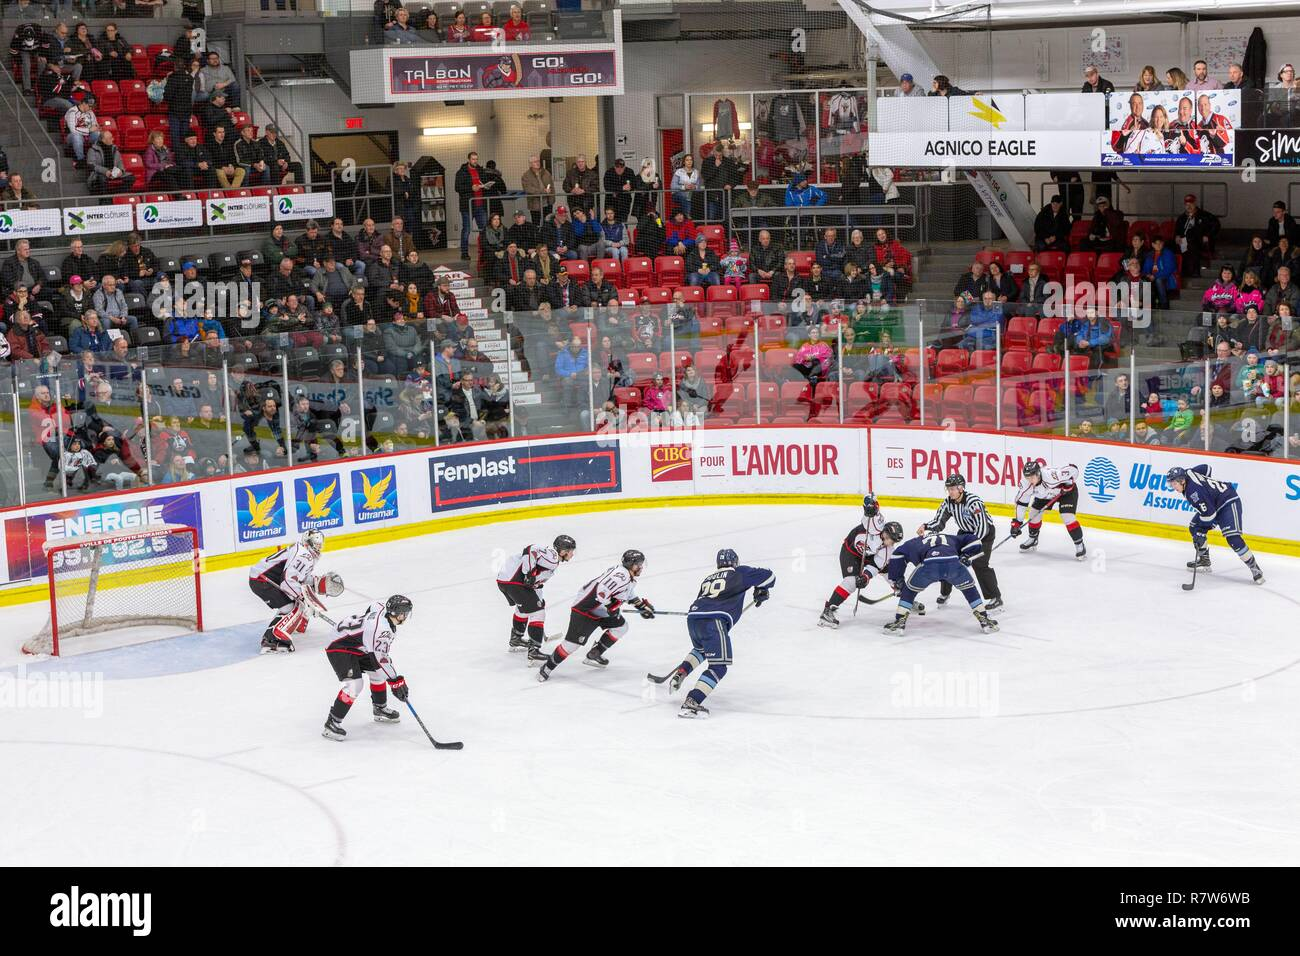 Canada, Province of Quebec, Abitibi Témiscamingue Region, Abitibi, Town of Rouyn Noranda, Ice Rink, Major Junior League Ice Hockey Game - Stock Image